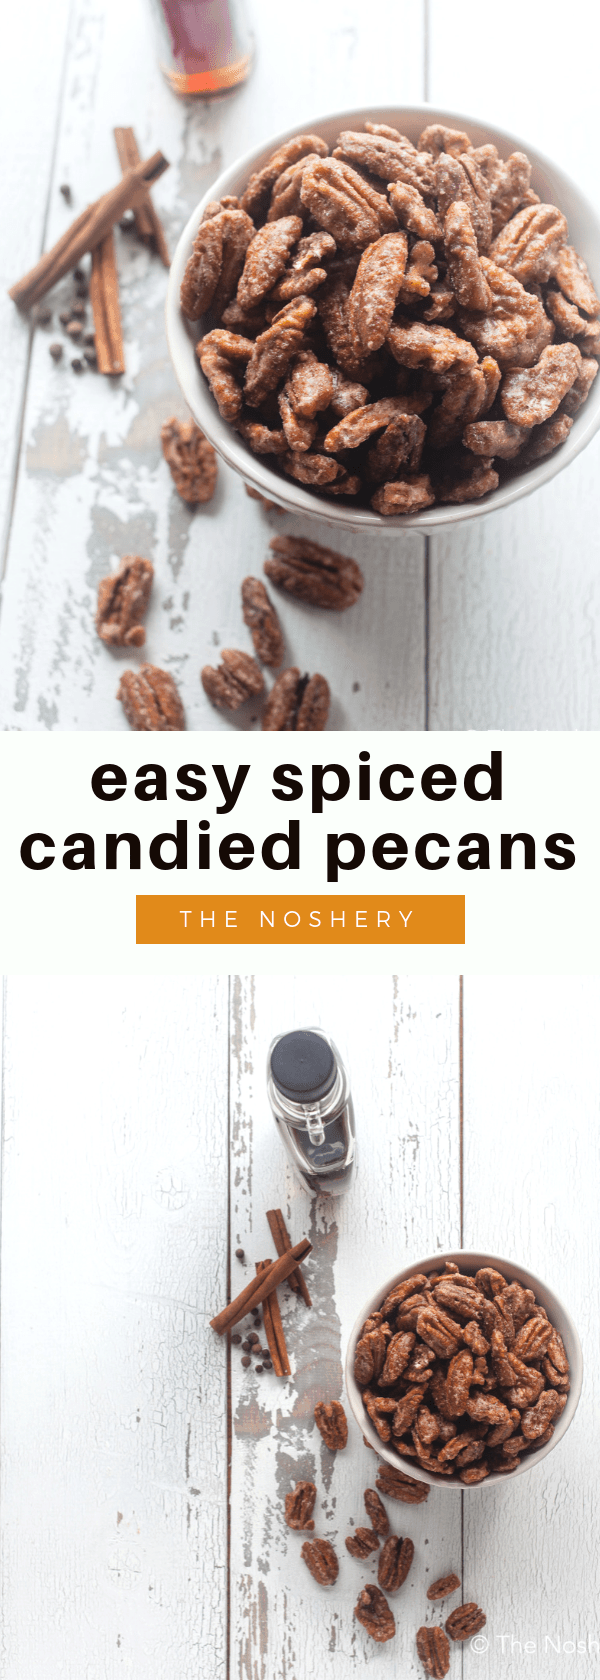 Easy Spiced Skillet Candied Pecans The Noshery